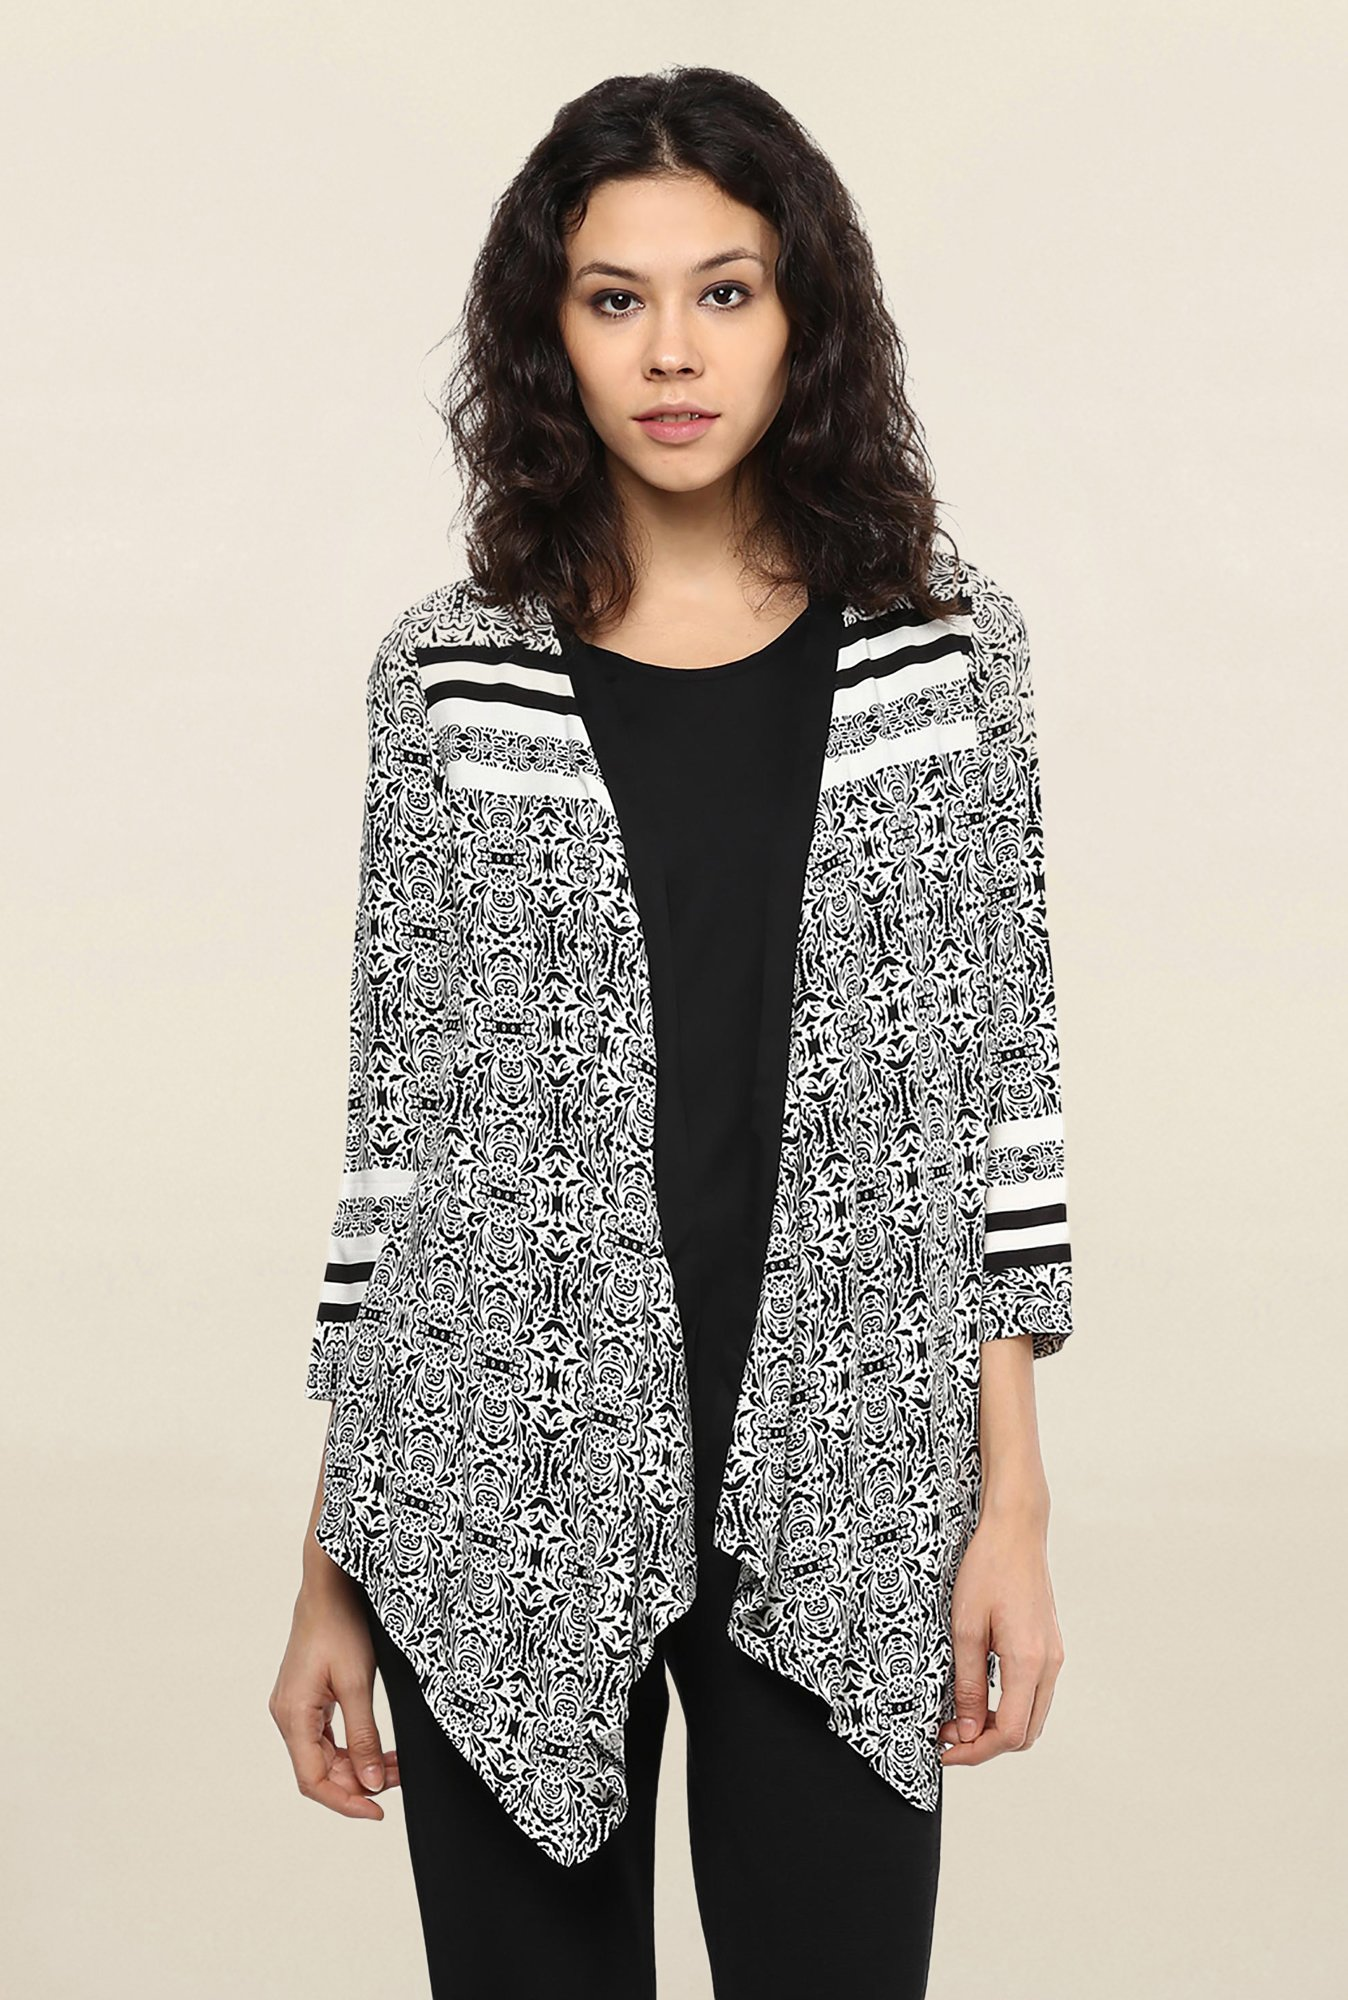 109 F Black & White Printed Shrug